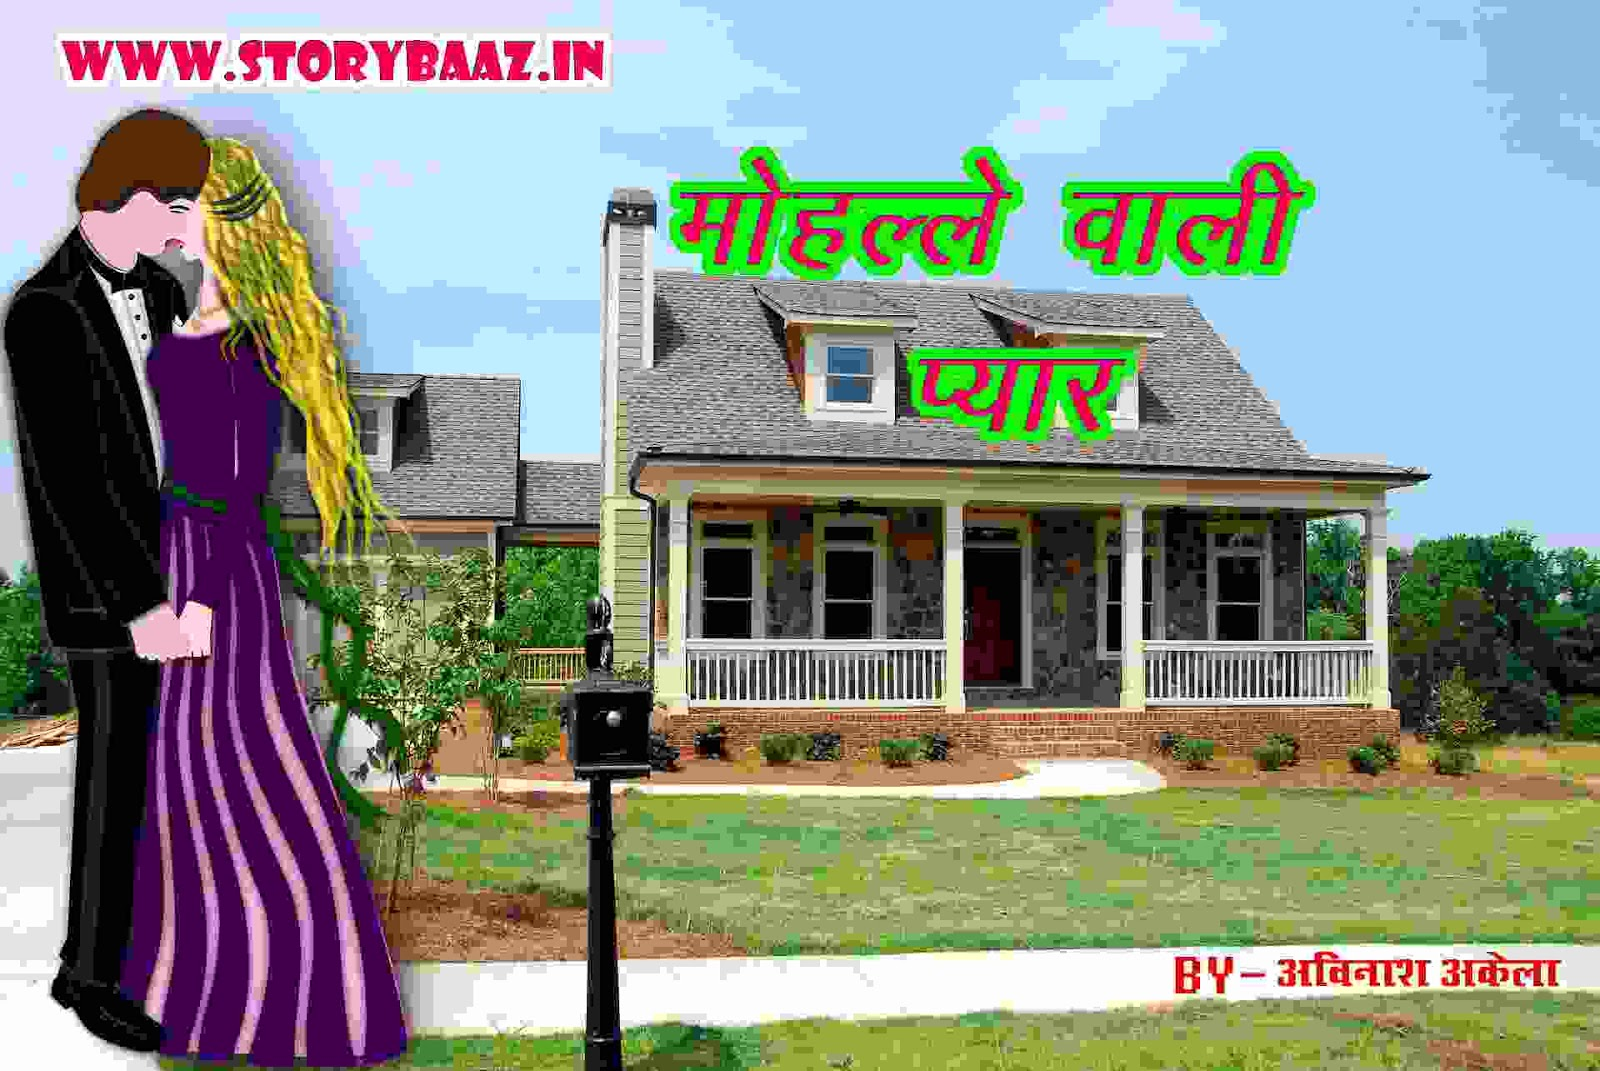 school-love-story-in-hindi-love-story-photo-hindi-me-love-story-photo-love-wali-photo-cute-love-photo